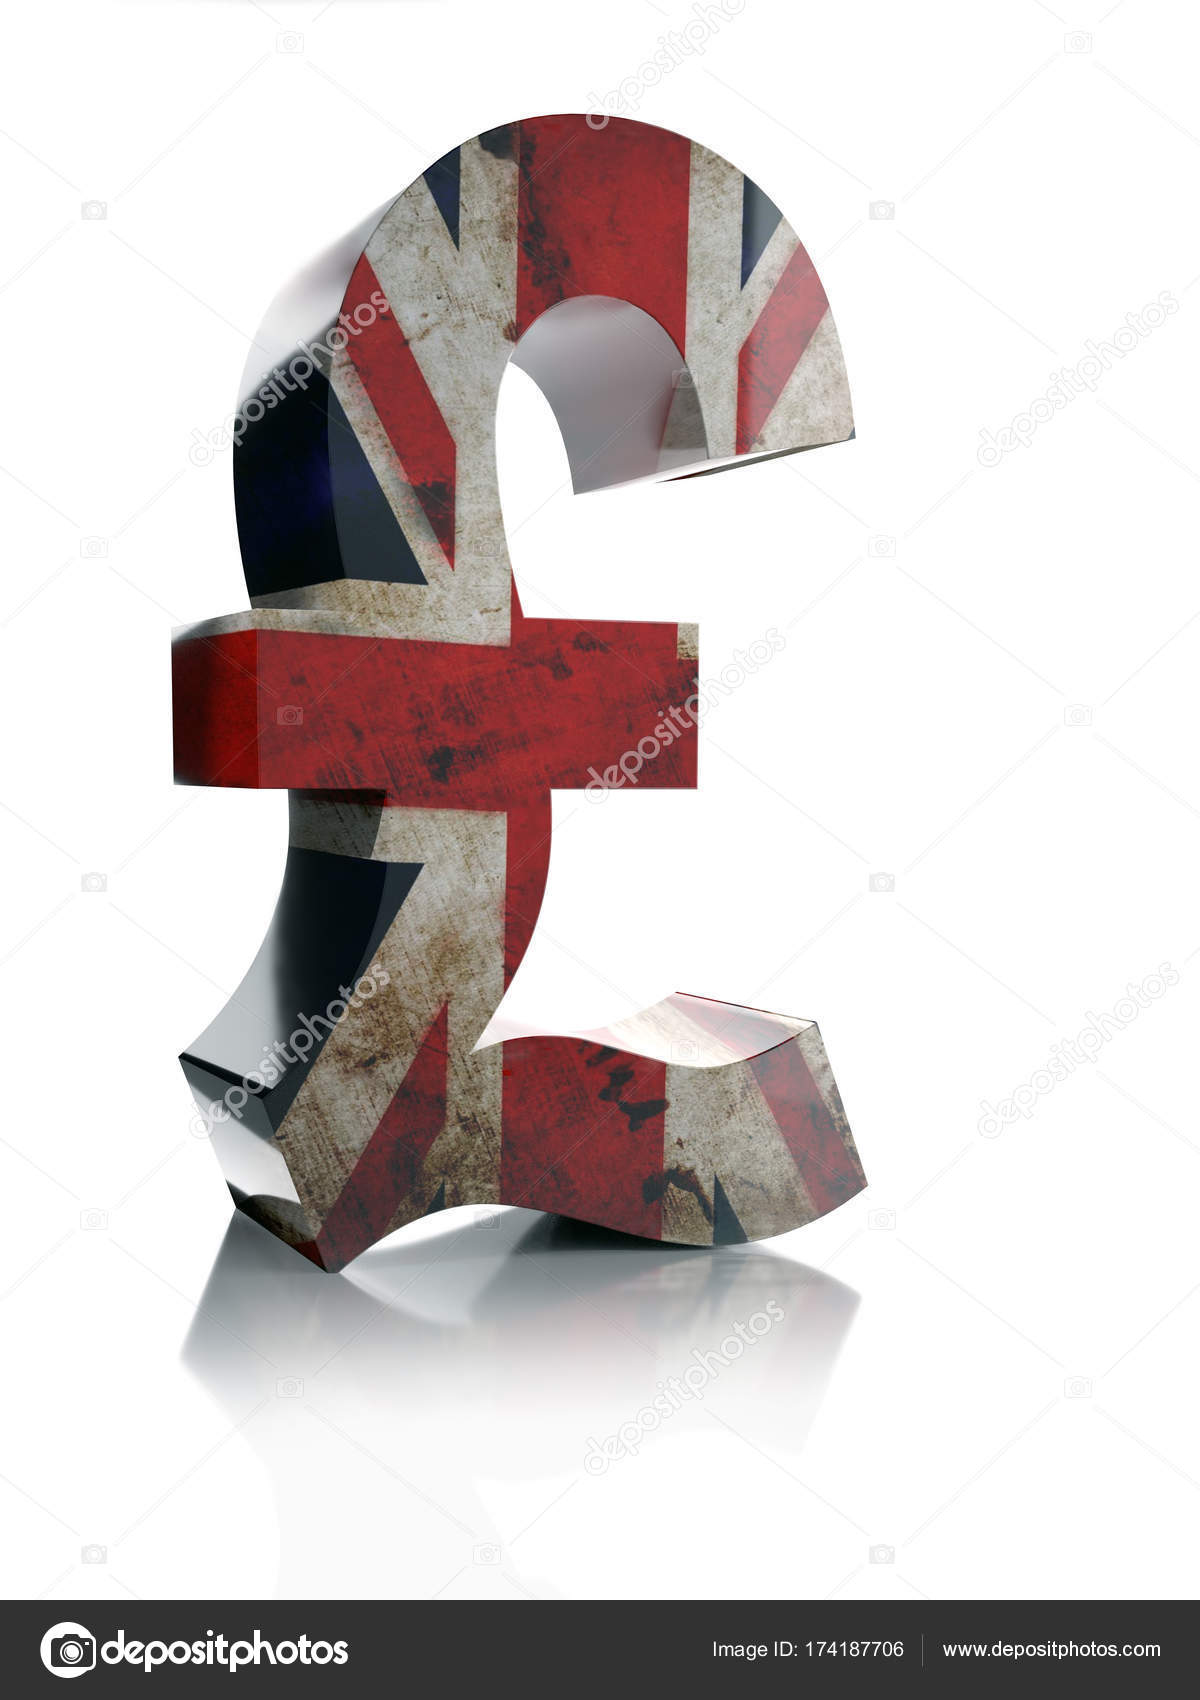 3d pound sterling currency symbol stock photo pryzmat 174187706 3d pound sterling currency symbol stock photo biocorpaavc Gallery